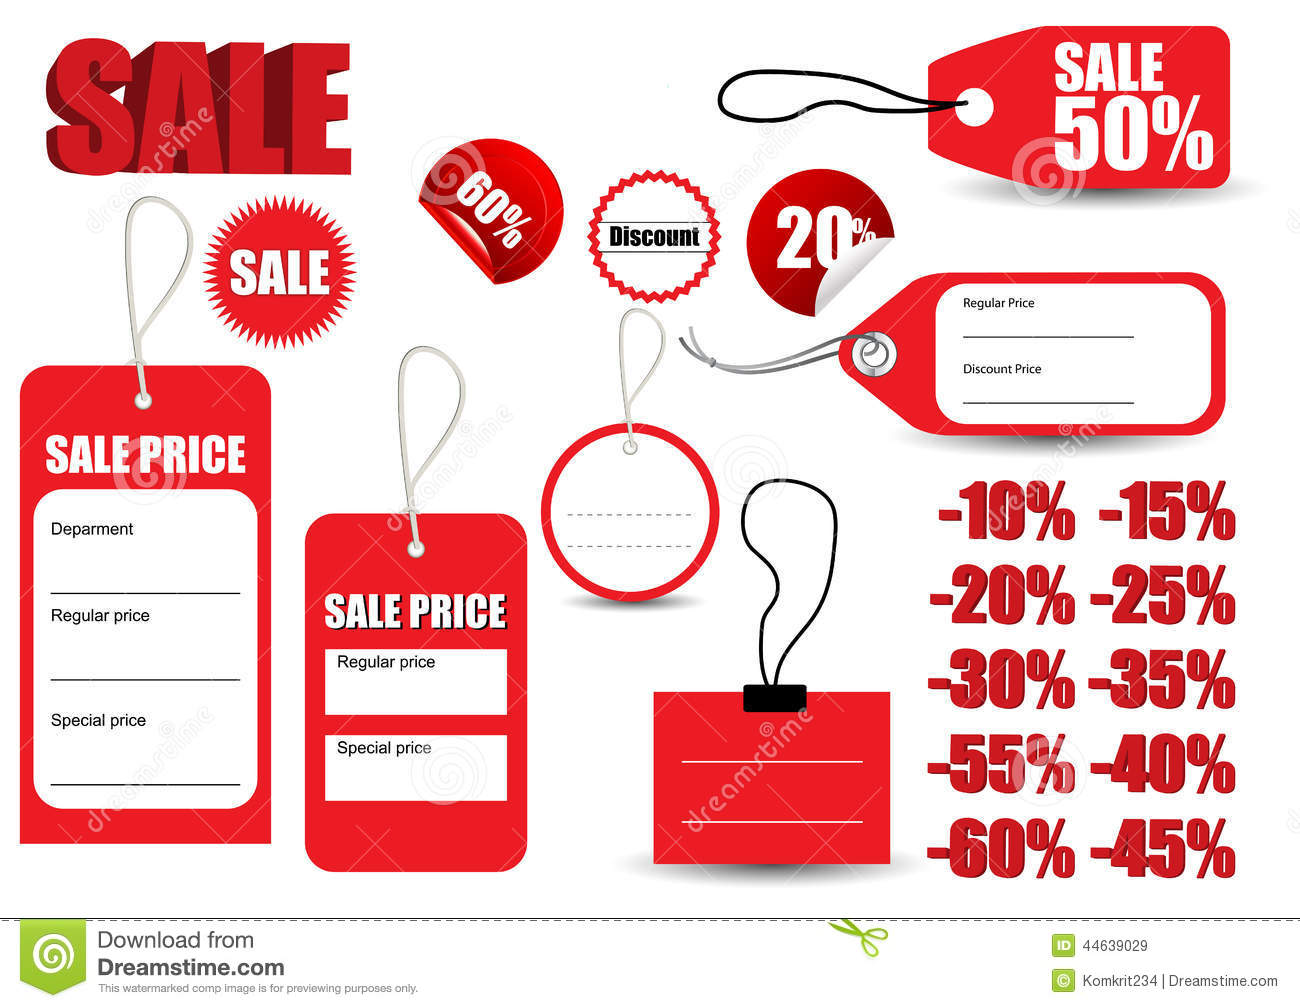 sales tags template sales tags template - Maths.equinetherapies.co